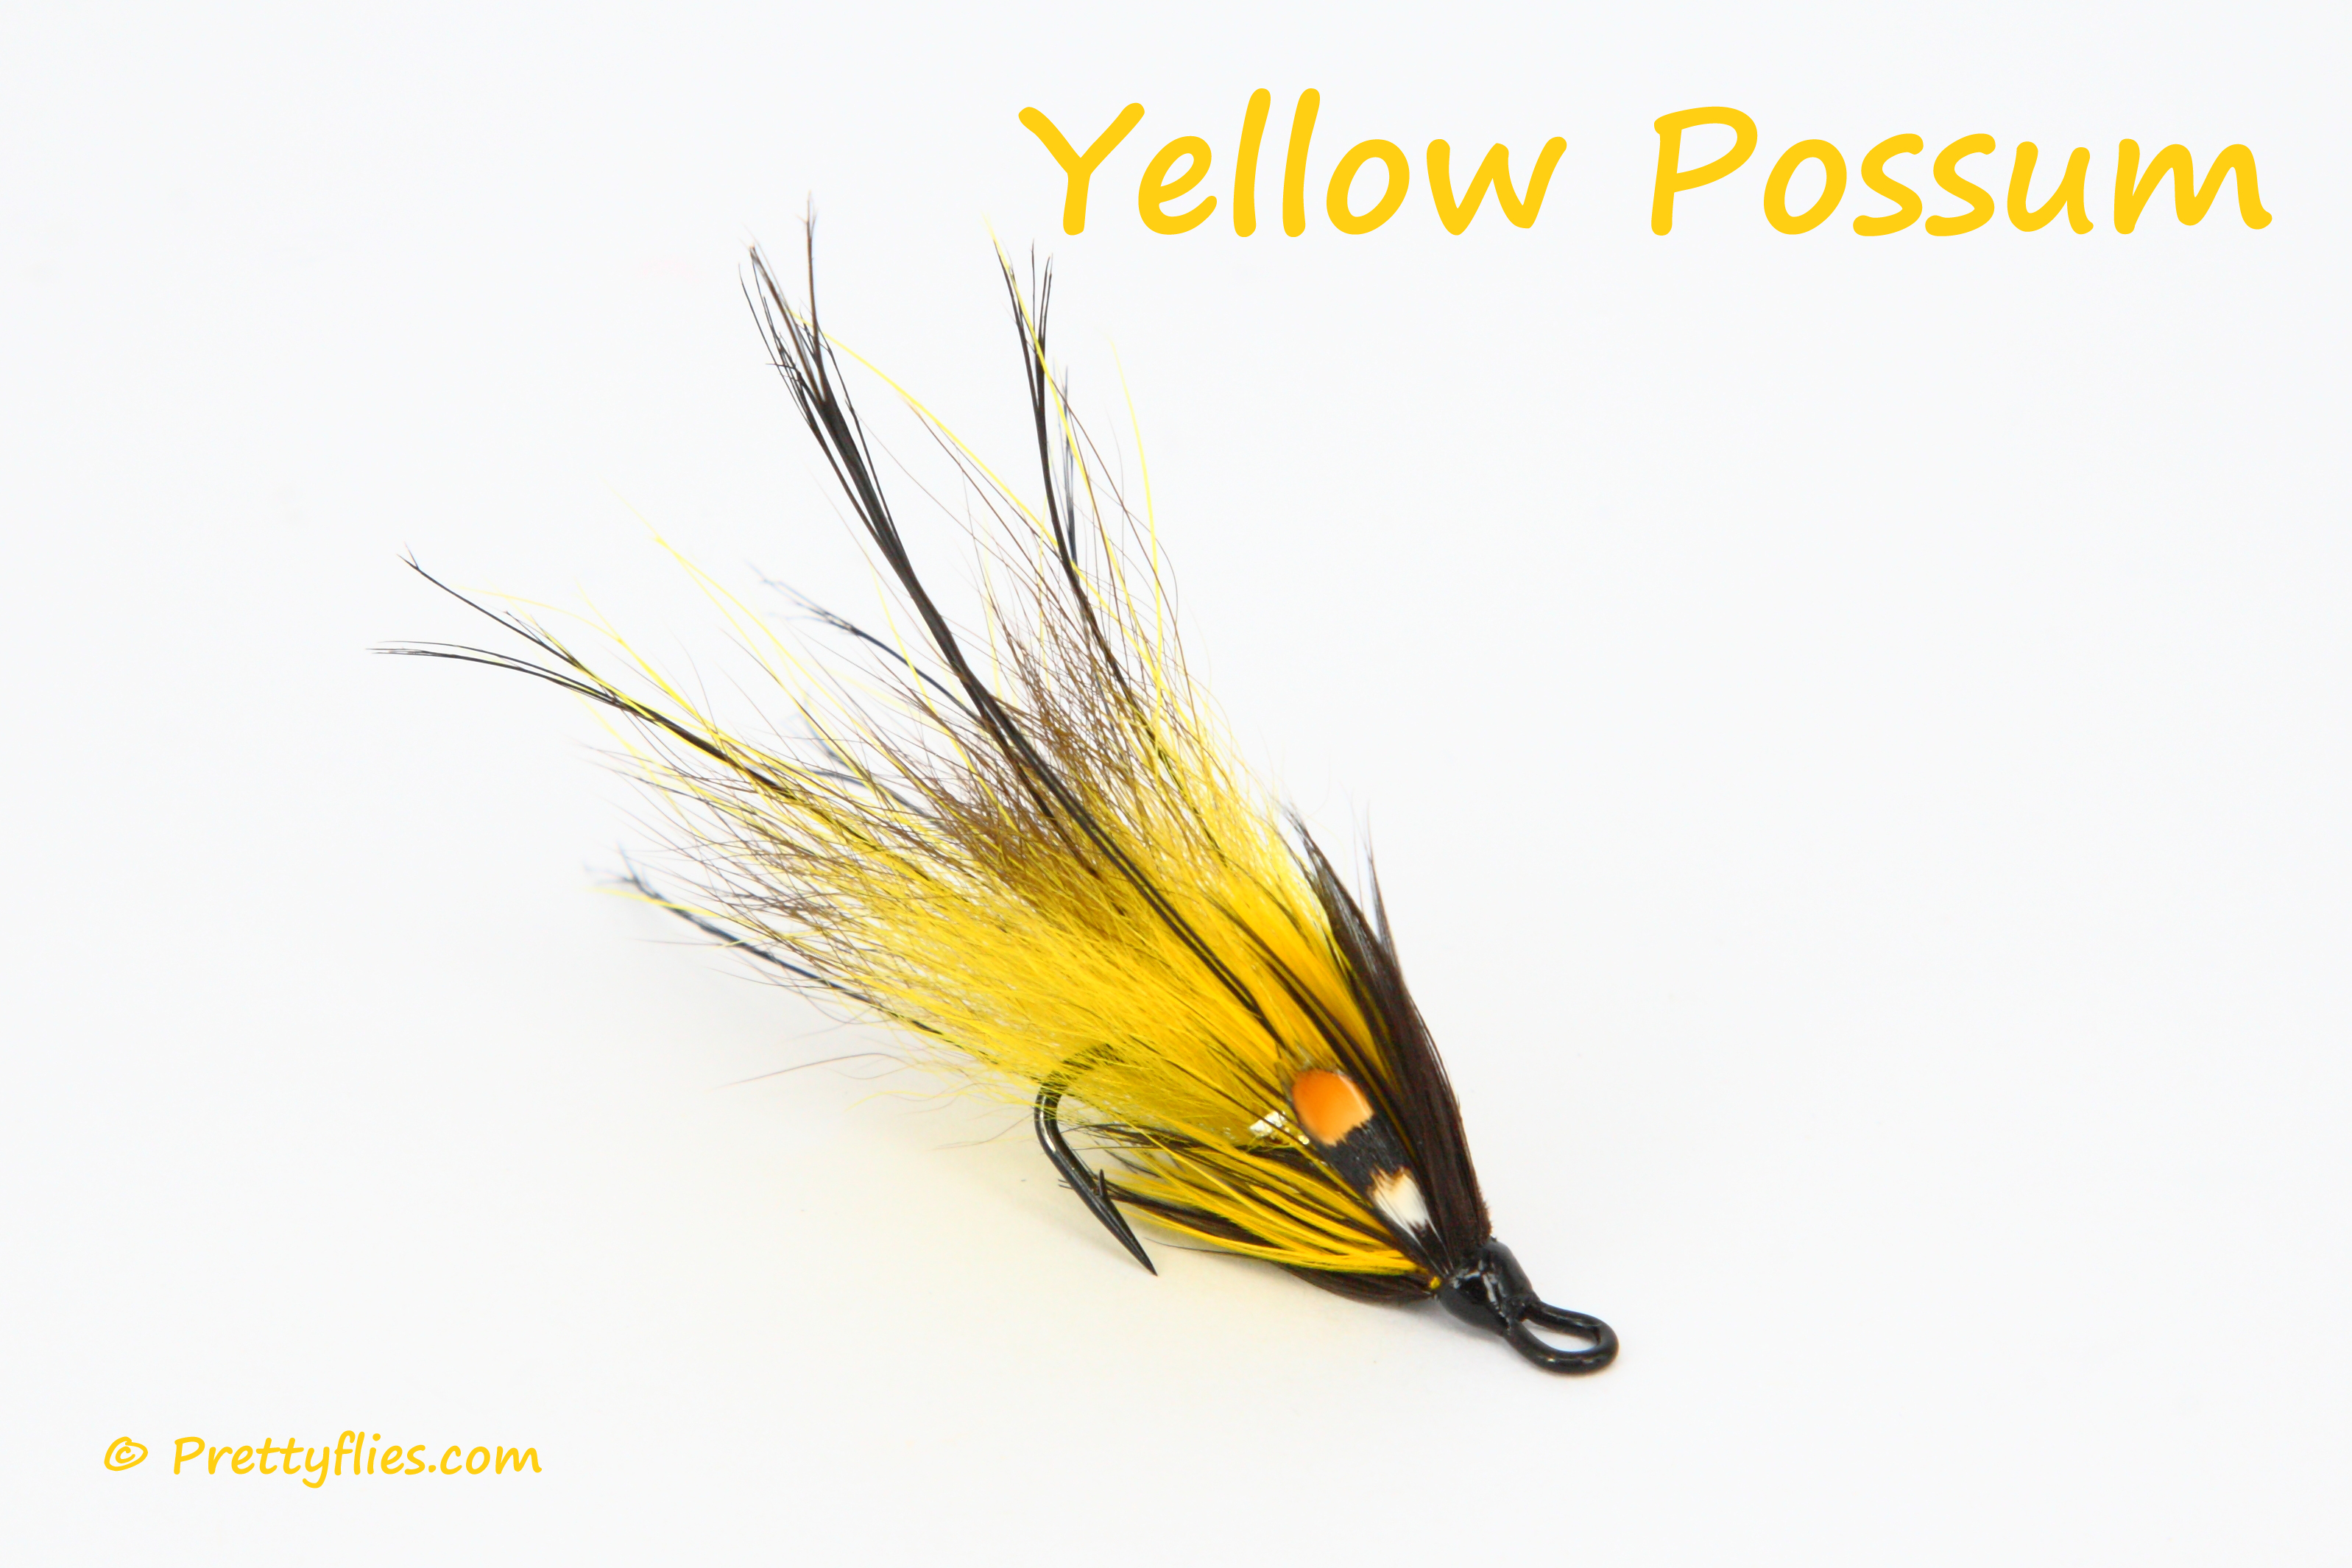 Yellow Possum copy.jpg